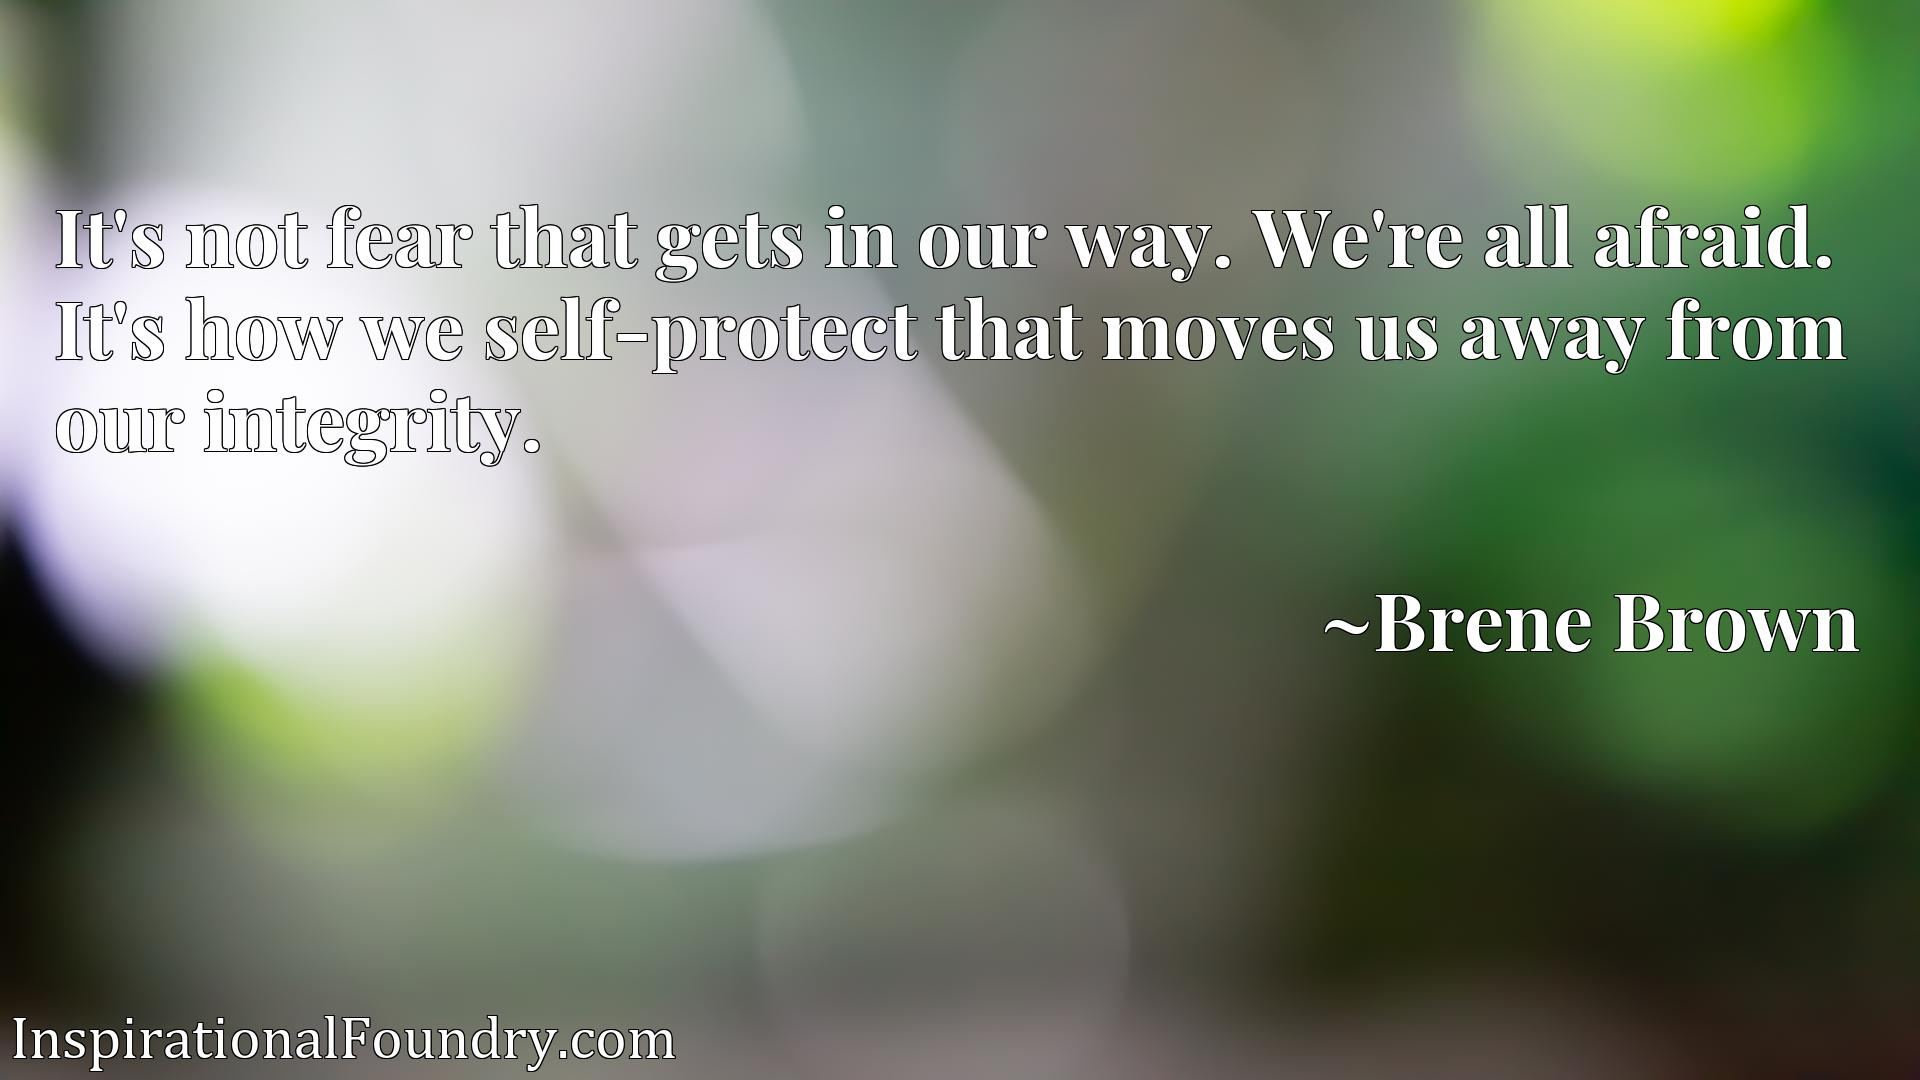 It's not fear that gets in our way. We're all afraid. It's how we self-protect that moves us away from our integrity.